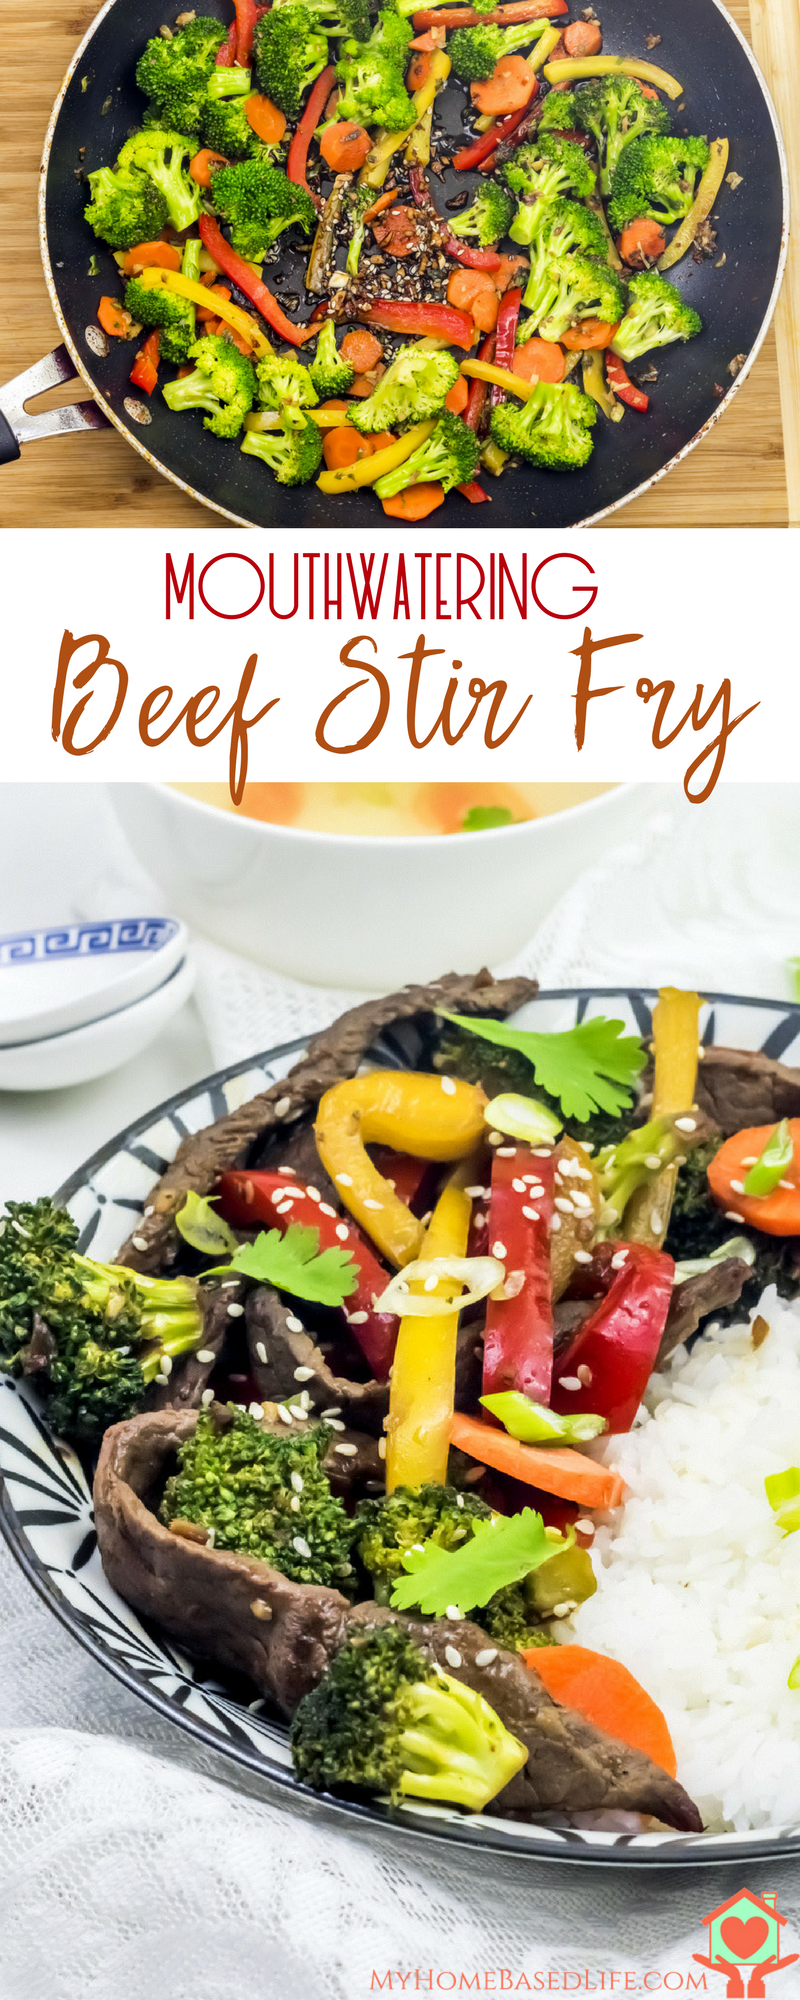 Craving a delicious, quick Beef Stir Fry for dinner? I have just the recipe for you! Ready in under 30 minutes and sure to be a family favorite. #stirfryrecipe #dinnerrecipe #beefrecipe | Dinner Recipe | Beef Recipes | Family Dinners | 30 minute Meals |Beef Stir Fry Dinner Recipe | Clean eating | Gluten Free | Paleo | Whole30 | Healthy Recipe